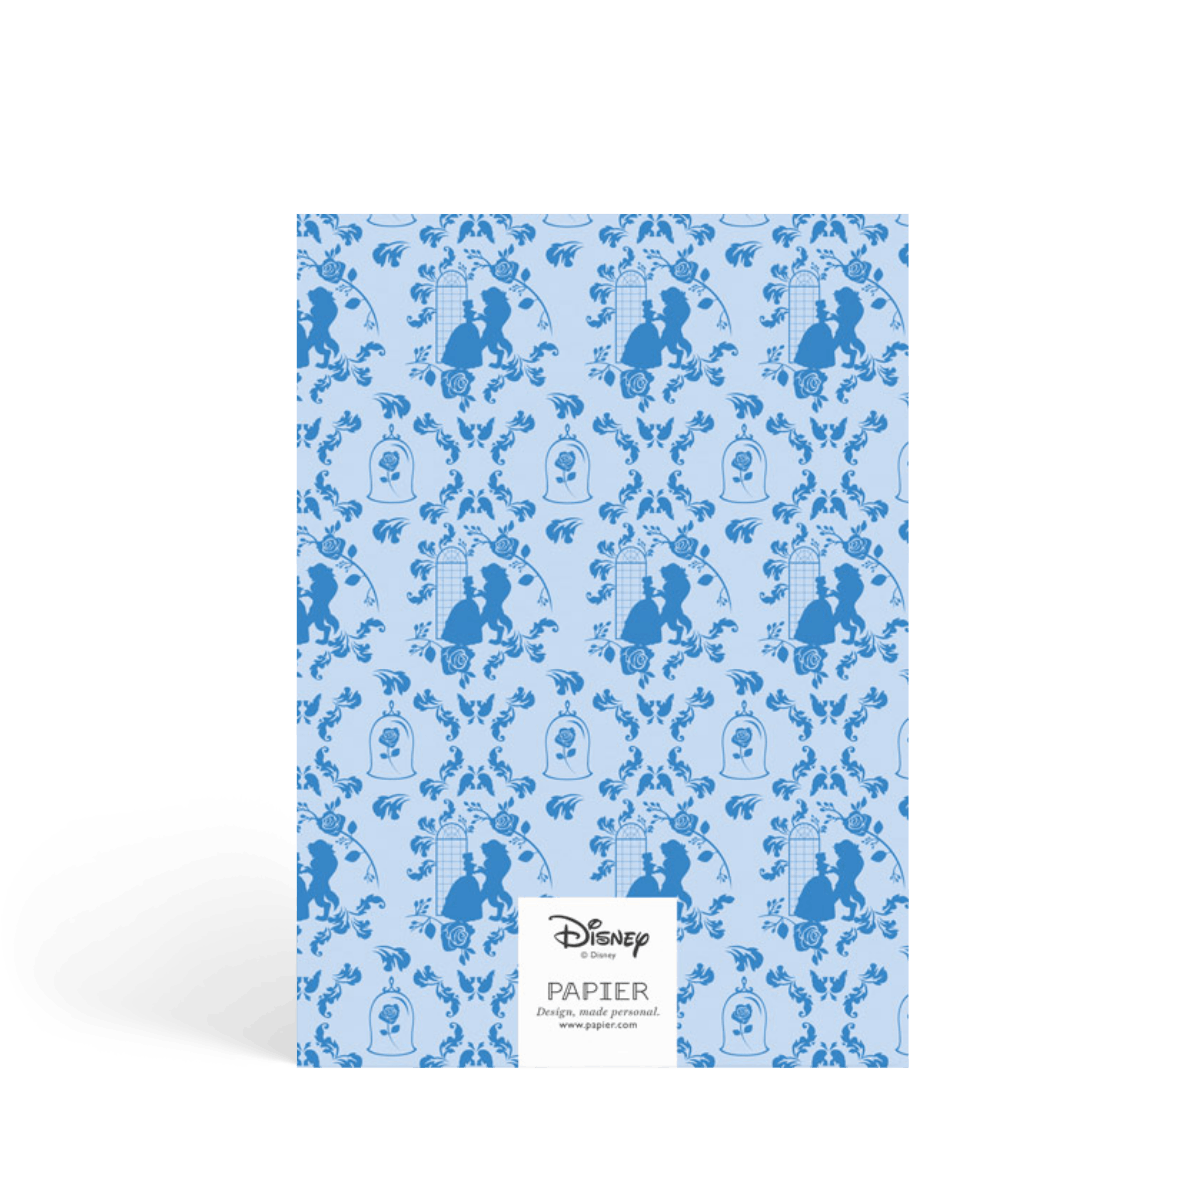 Https%3a%2f%2fwww.papier.com%2fproduct image%2f64235%2f5%2fbeauty the beast rose 15075 rueckseite 1548949662.png?ixlib=rb 1.1